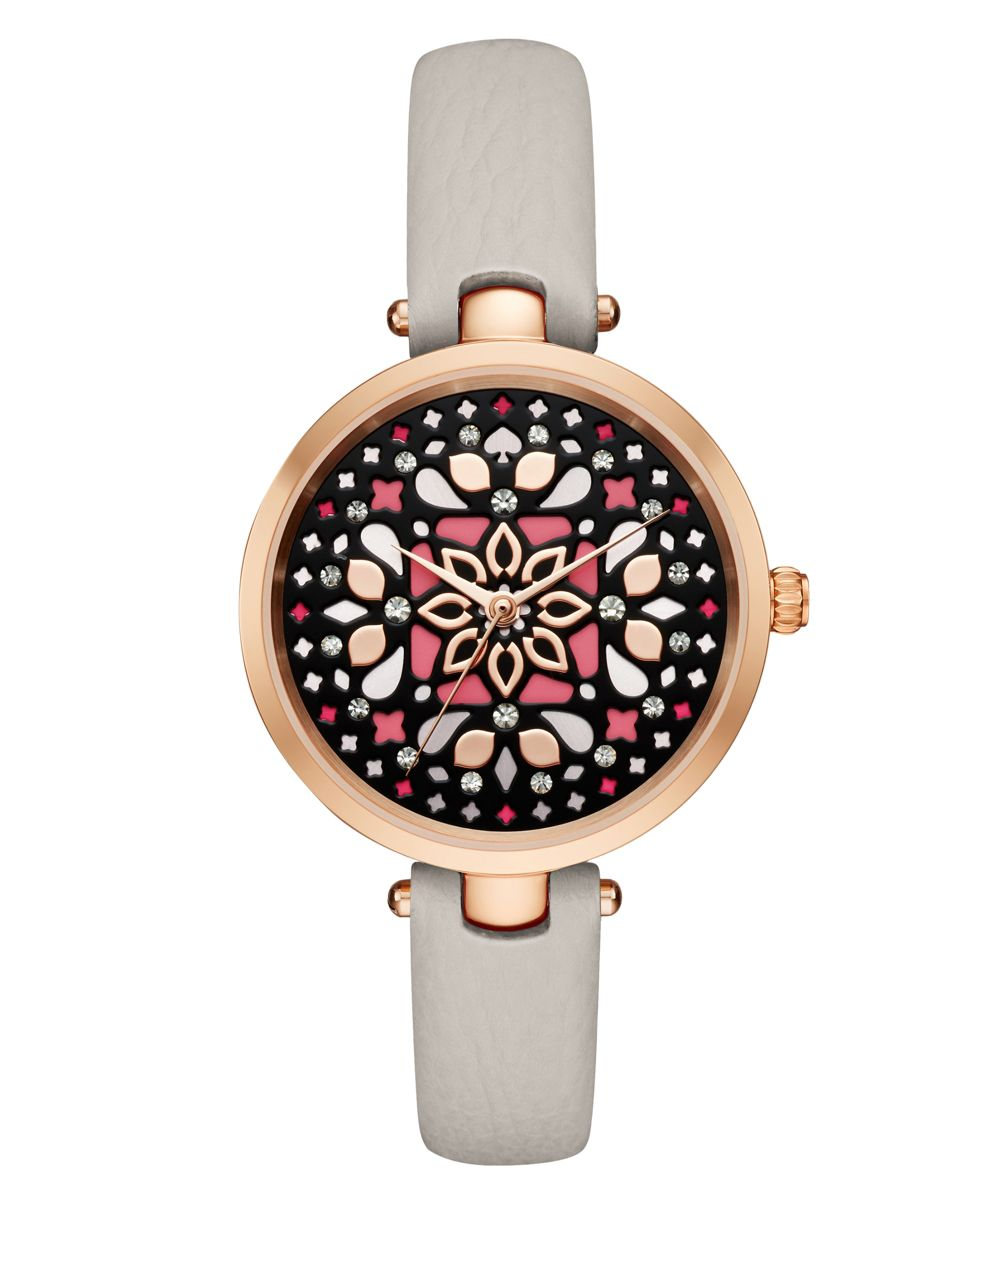 Kate Spade Mosaic Dial Round Analog Watch // Price: $195 // Purchase at Lord & Taylor stores // (Photo: Lord & Taylor)